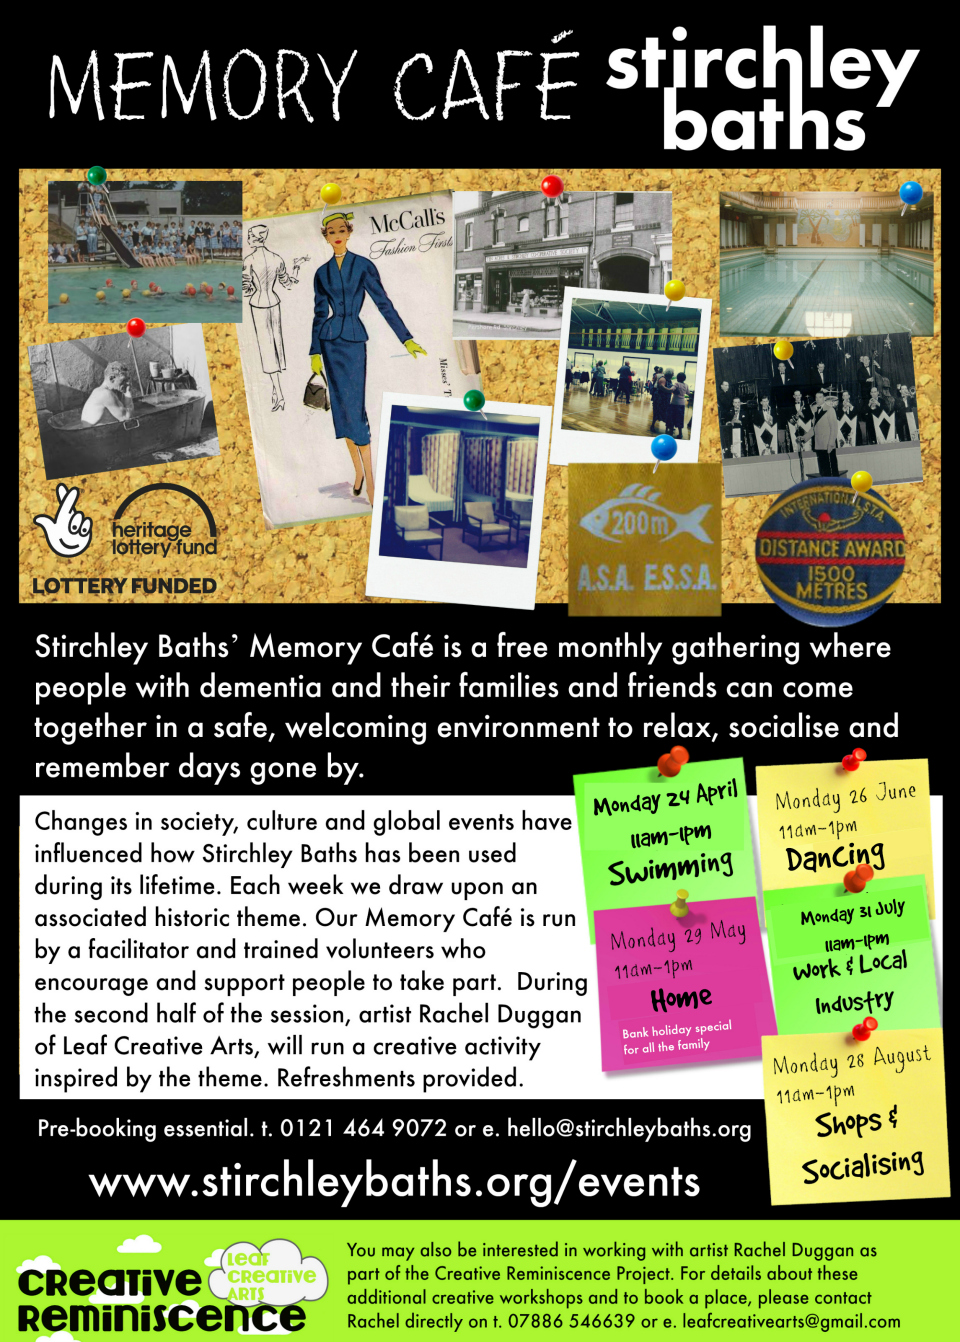 Gmail themes holiday - Alongside And As An Extension Of The Memory Cafe Rachel Will Be Running A Project Called Creative Reminiscence Which Includes A Further Two Creative And